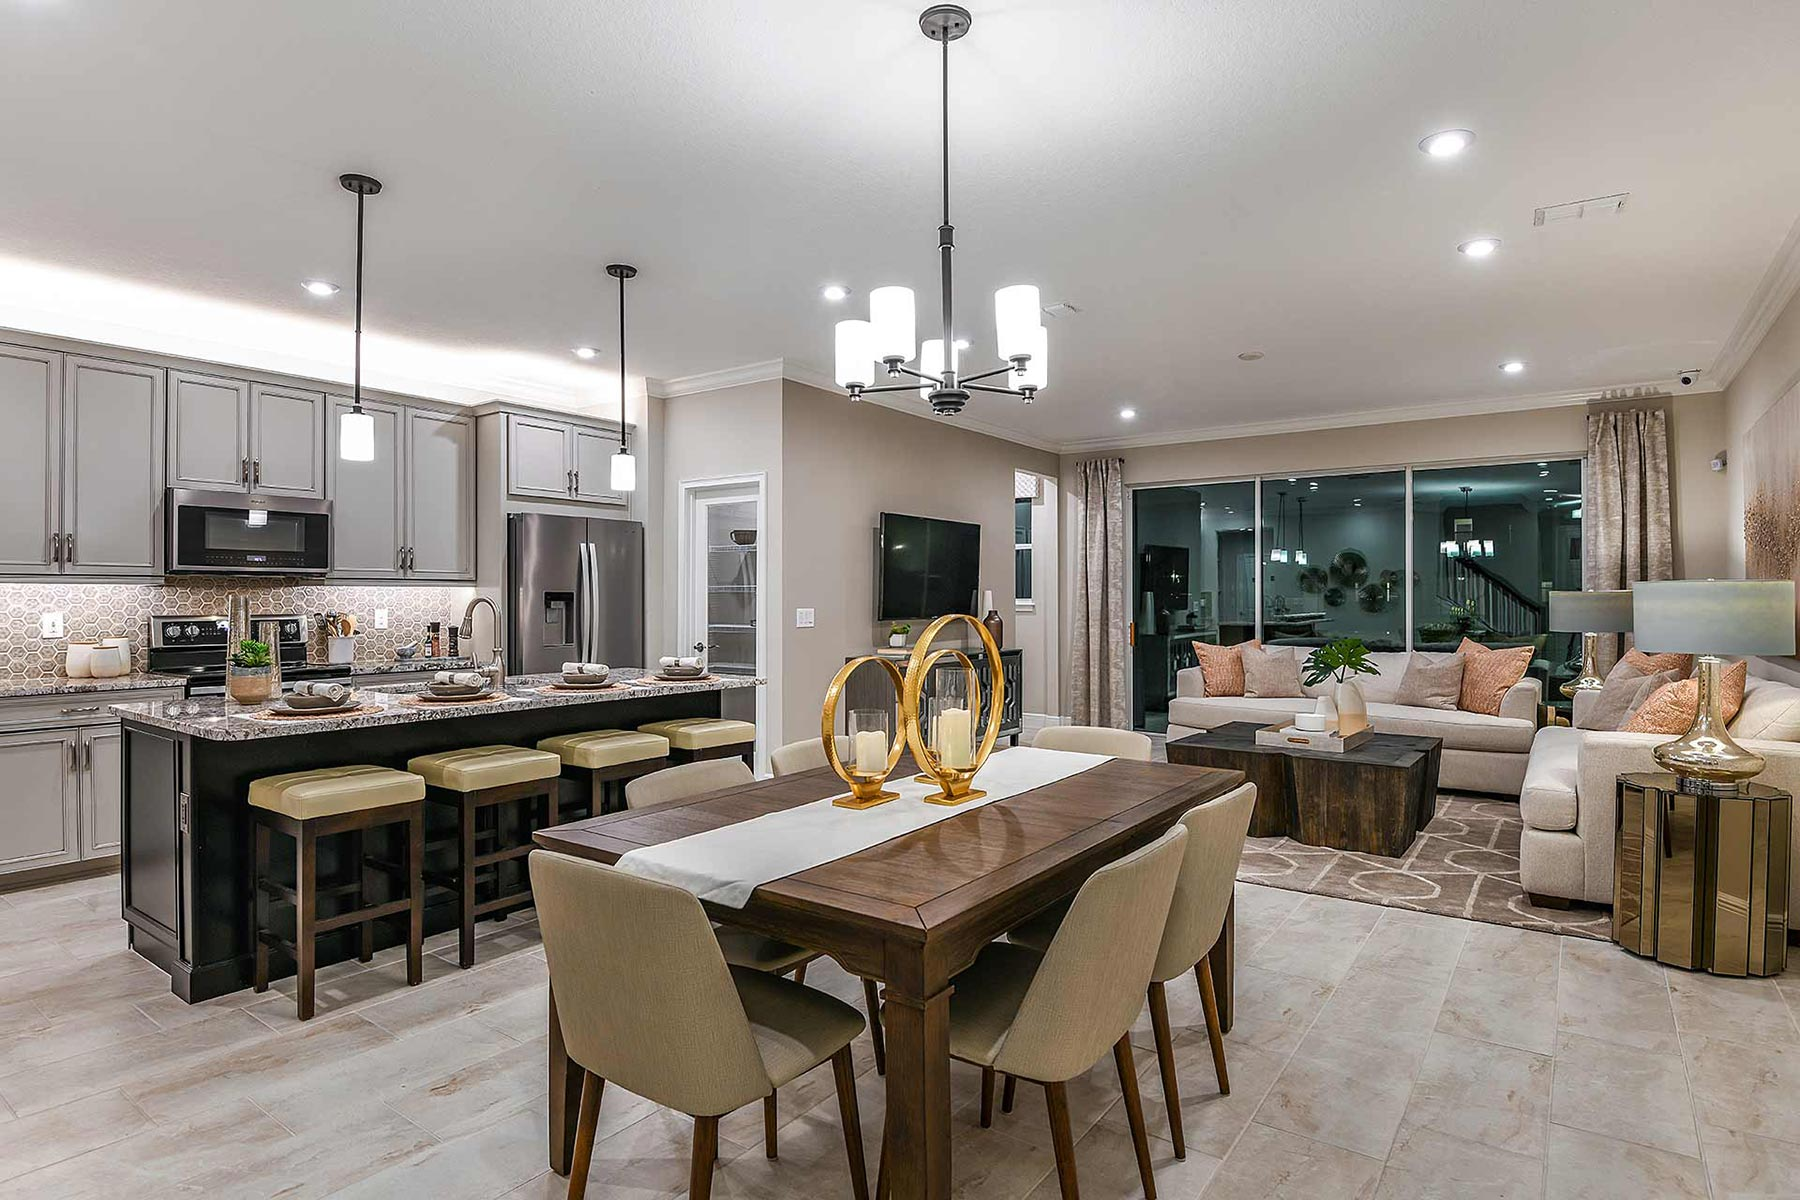 Avea Pointe Dining in Lutz Florida by Mattamy Homes